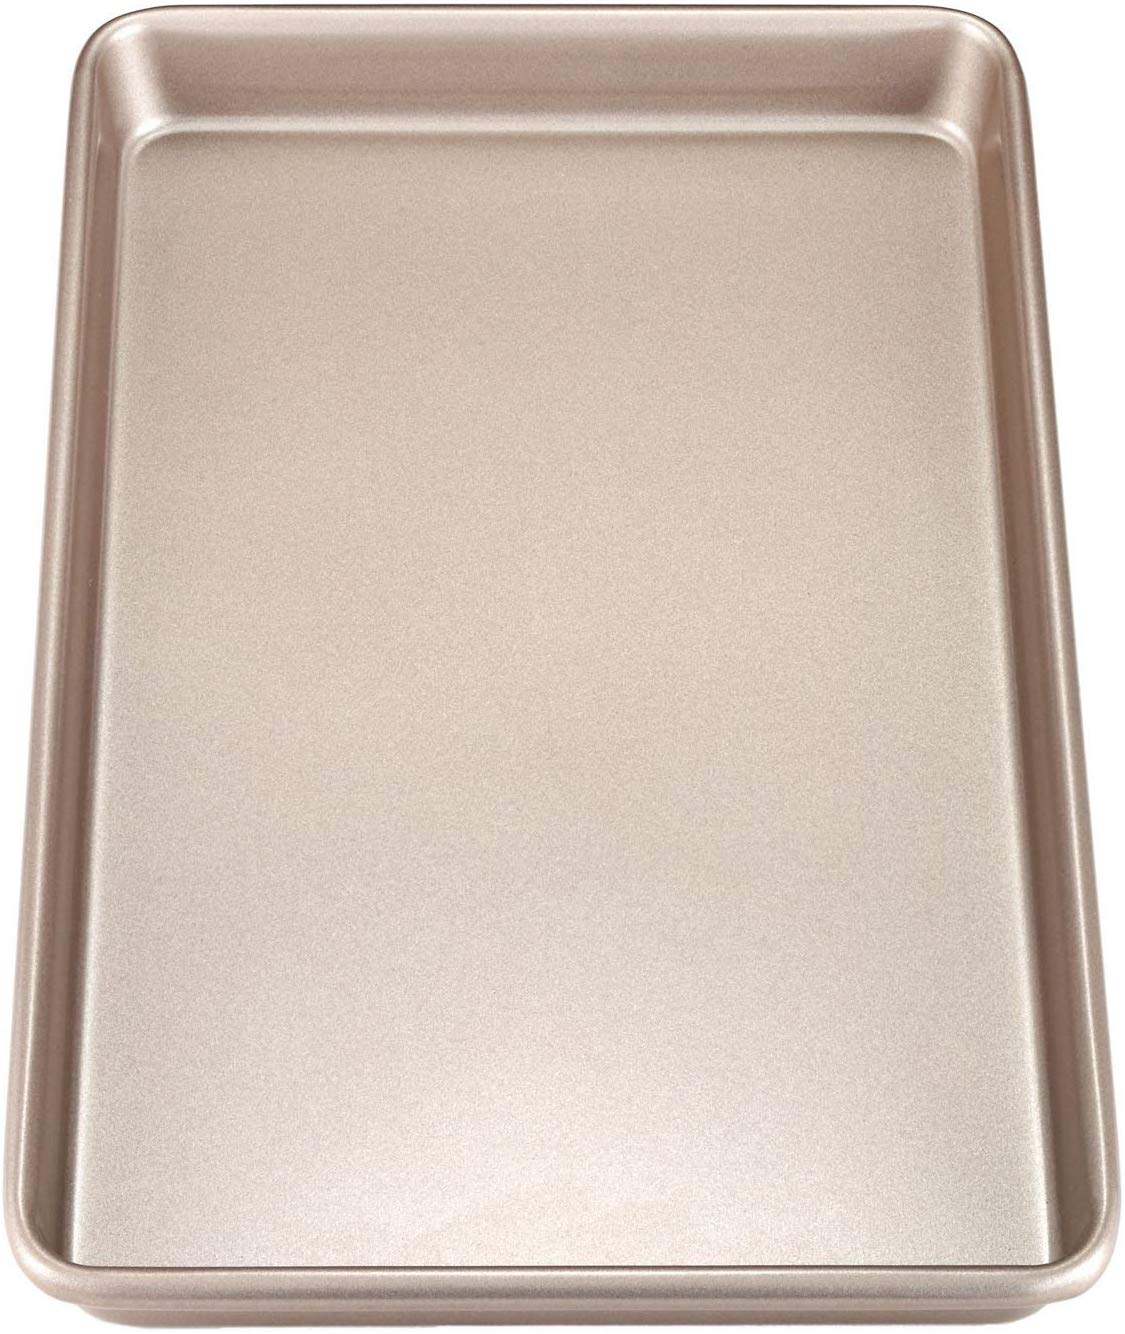 CHEFMADE 17-Inch Rimmed Baking Pan